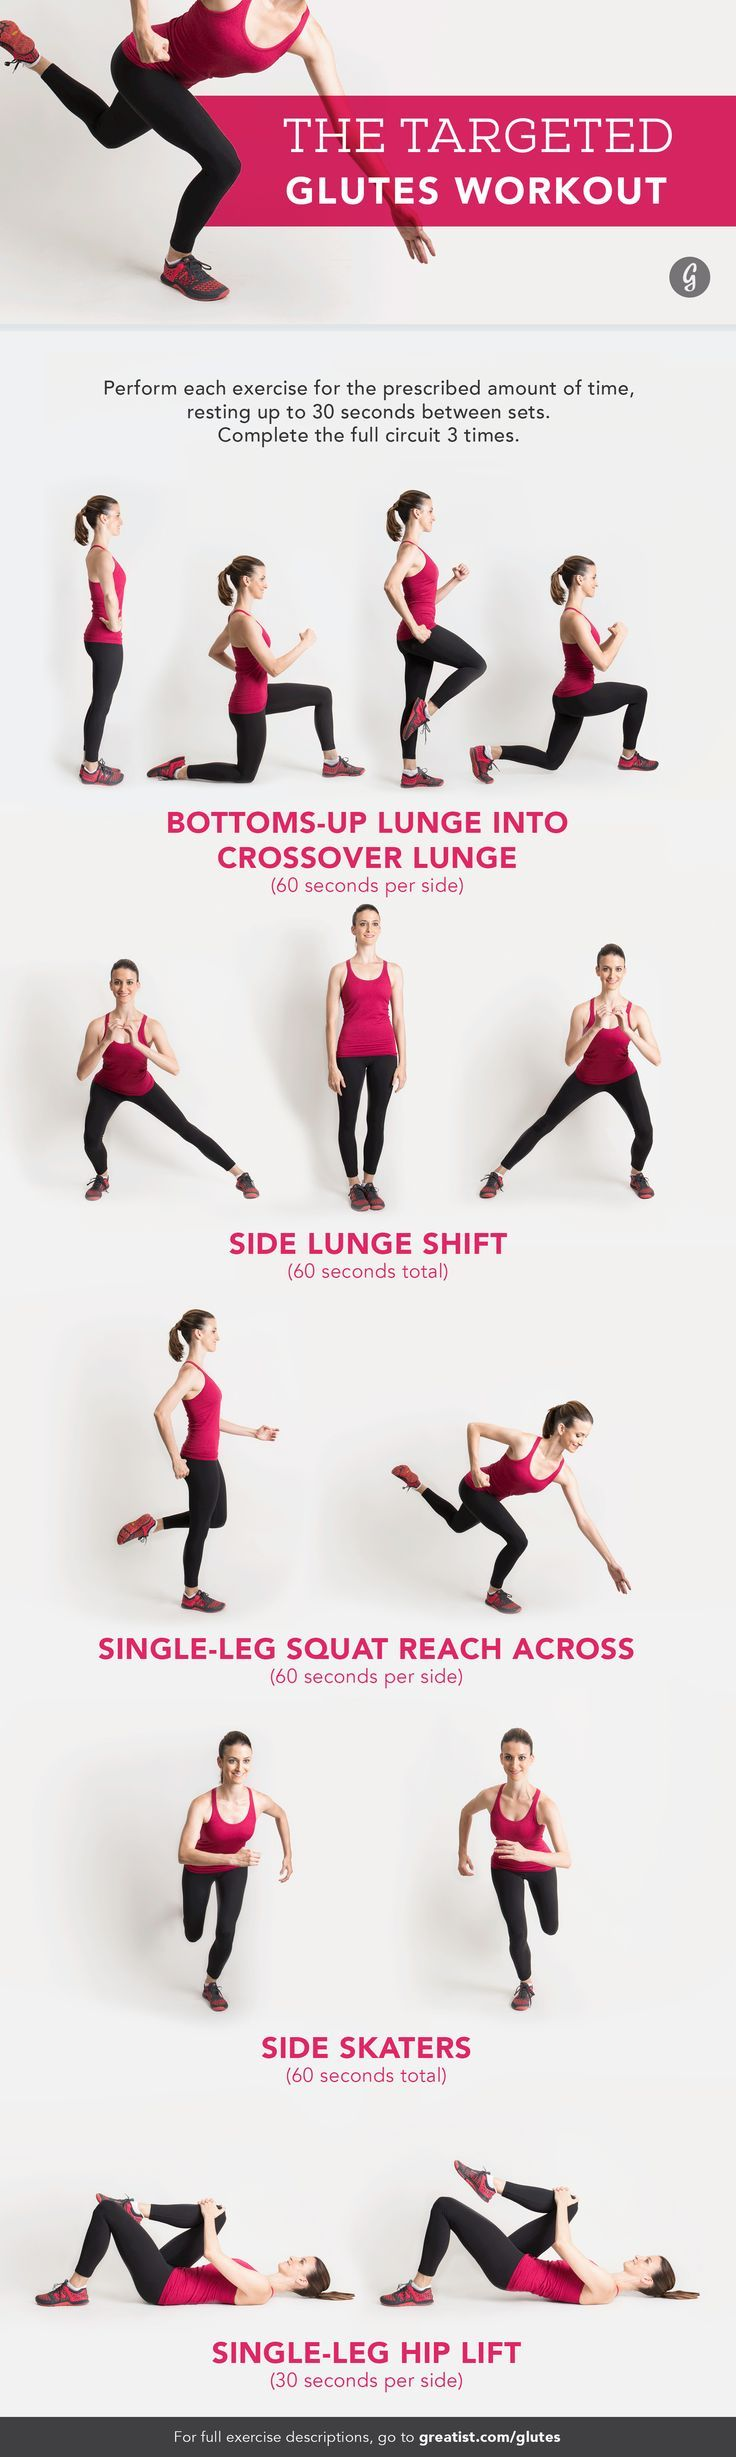 The 25 Killer Bodyweight Moves for Your Butt http://greatist.com/move/bodyweight-butt-exercises